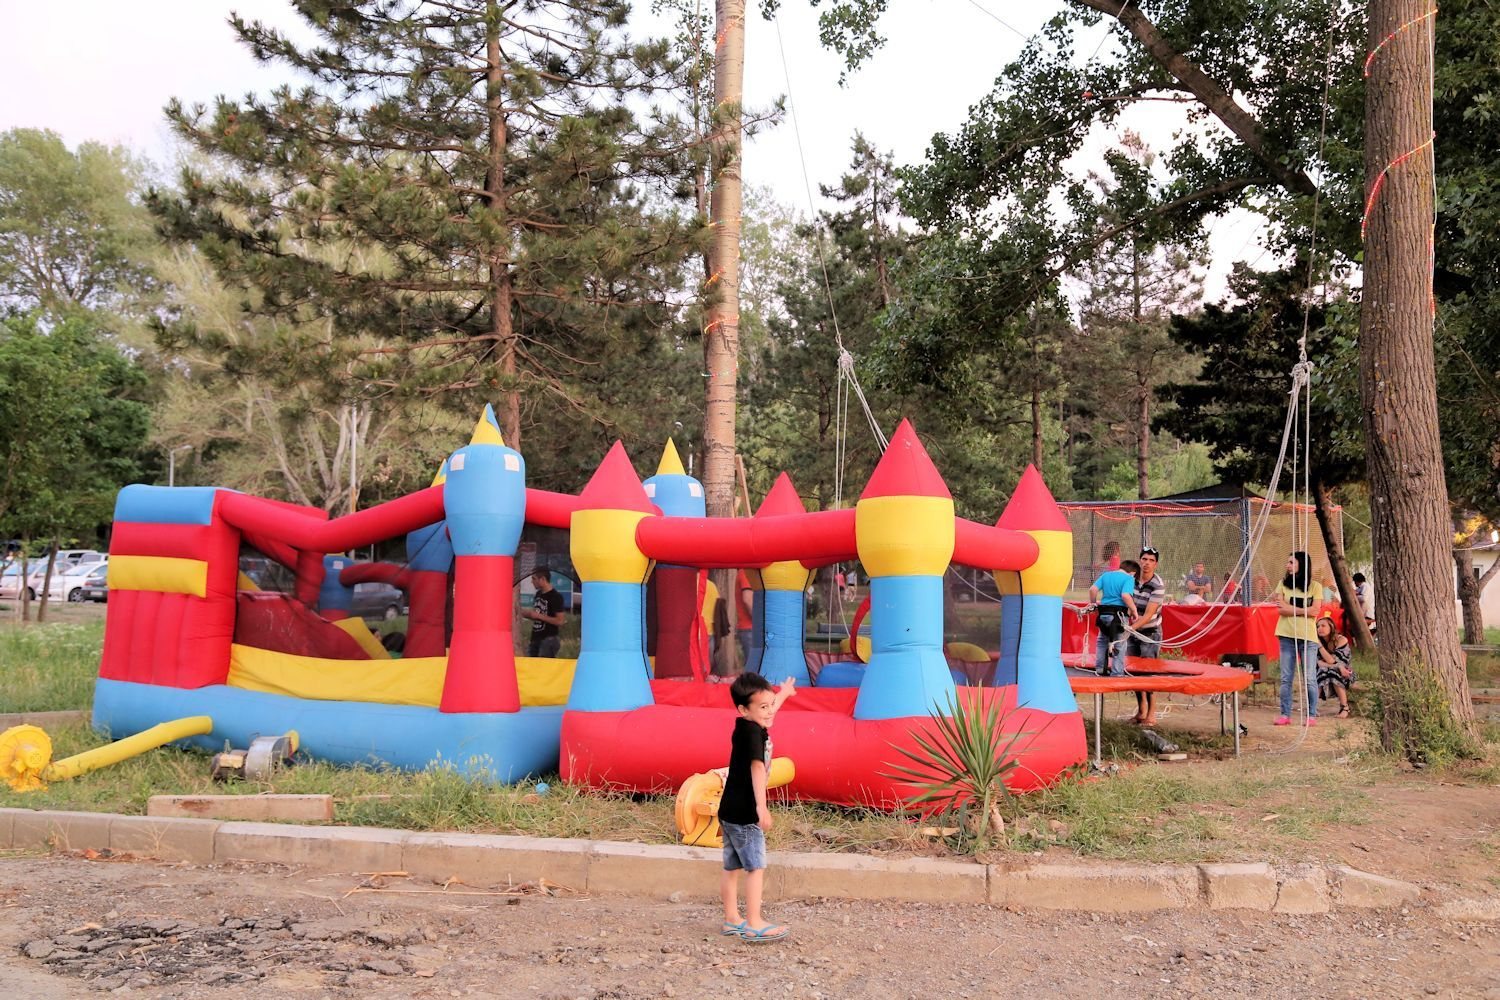 Entertainment for kids at Lisi lake